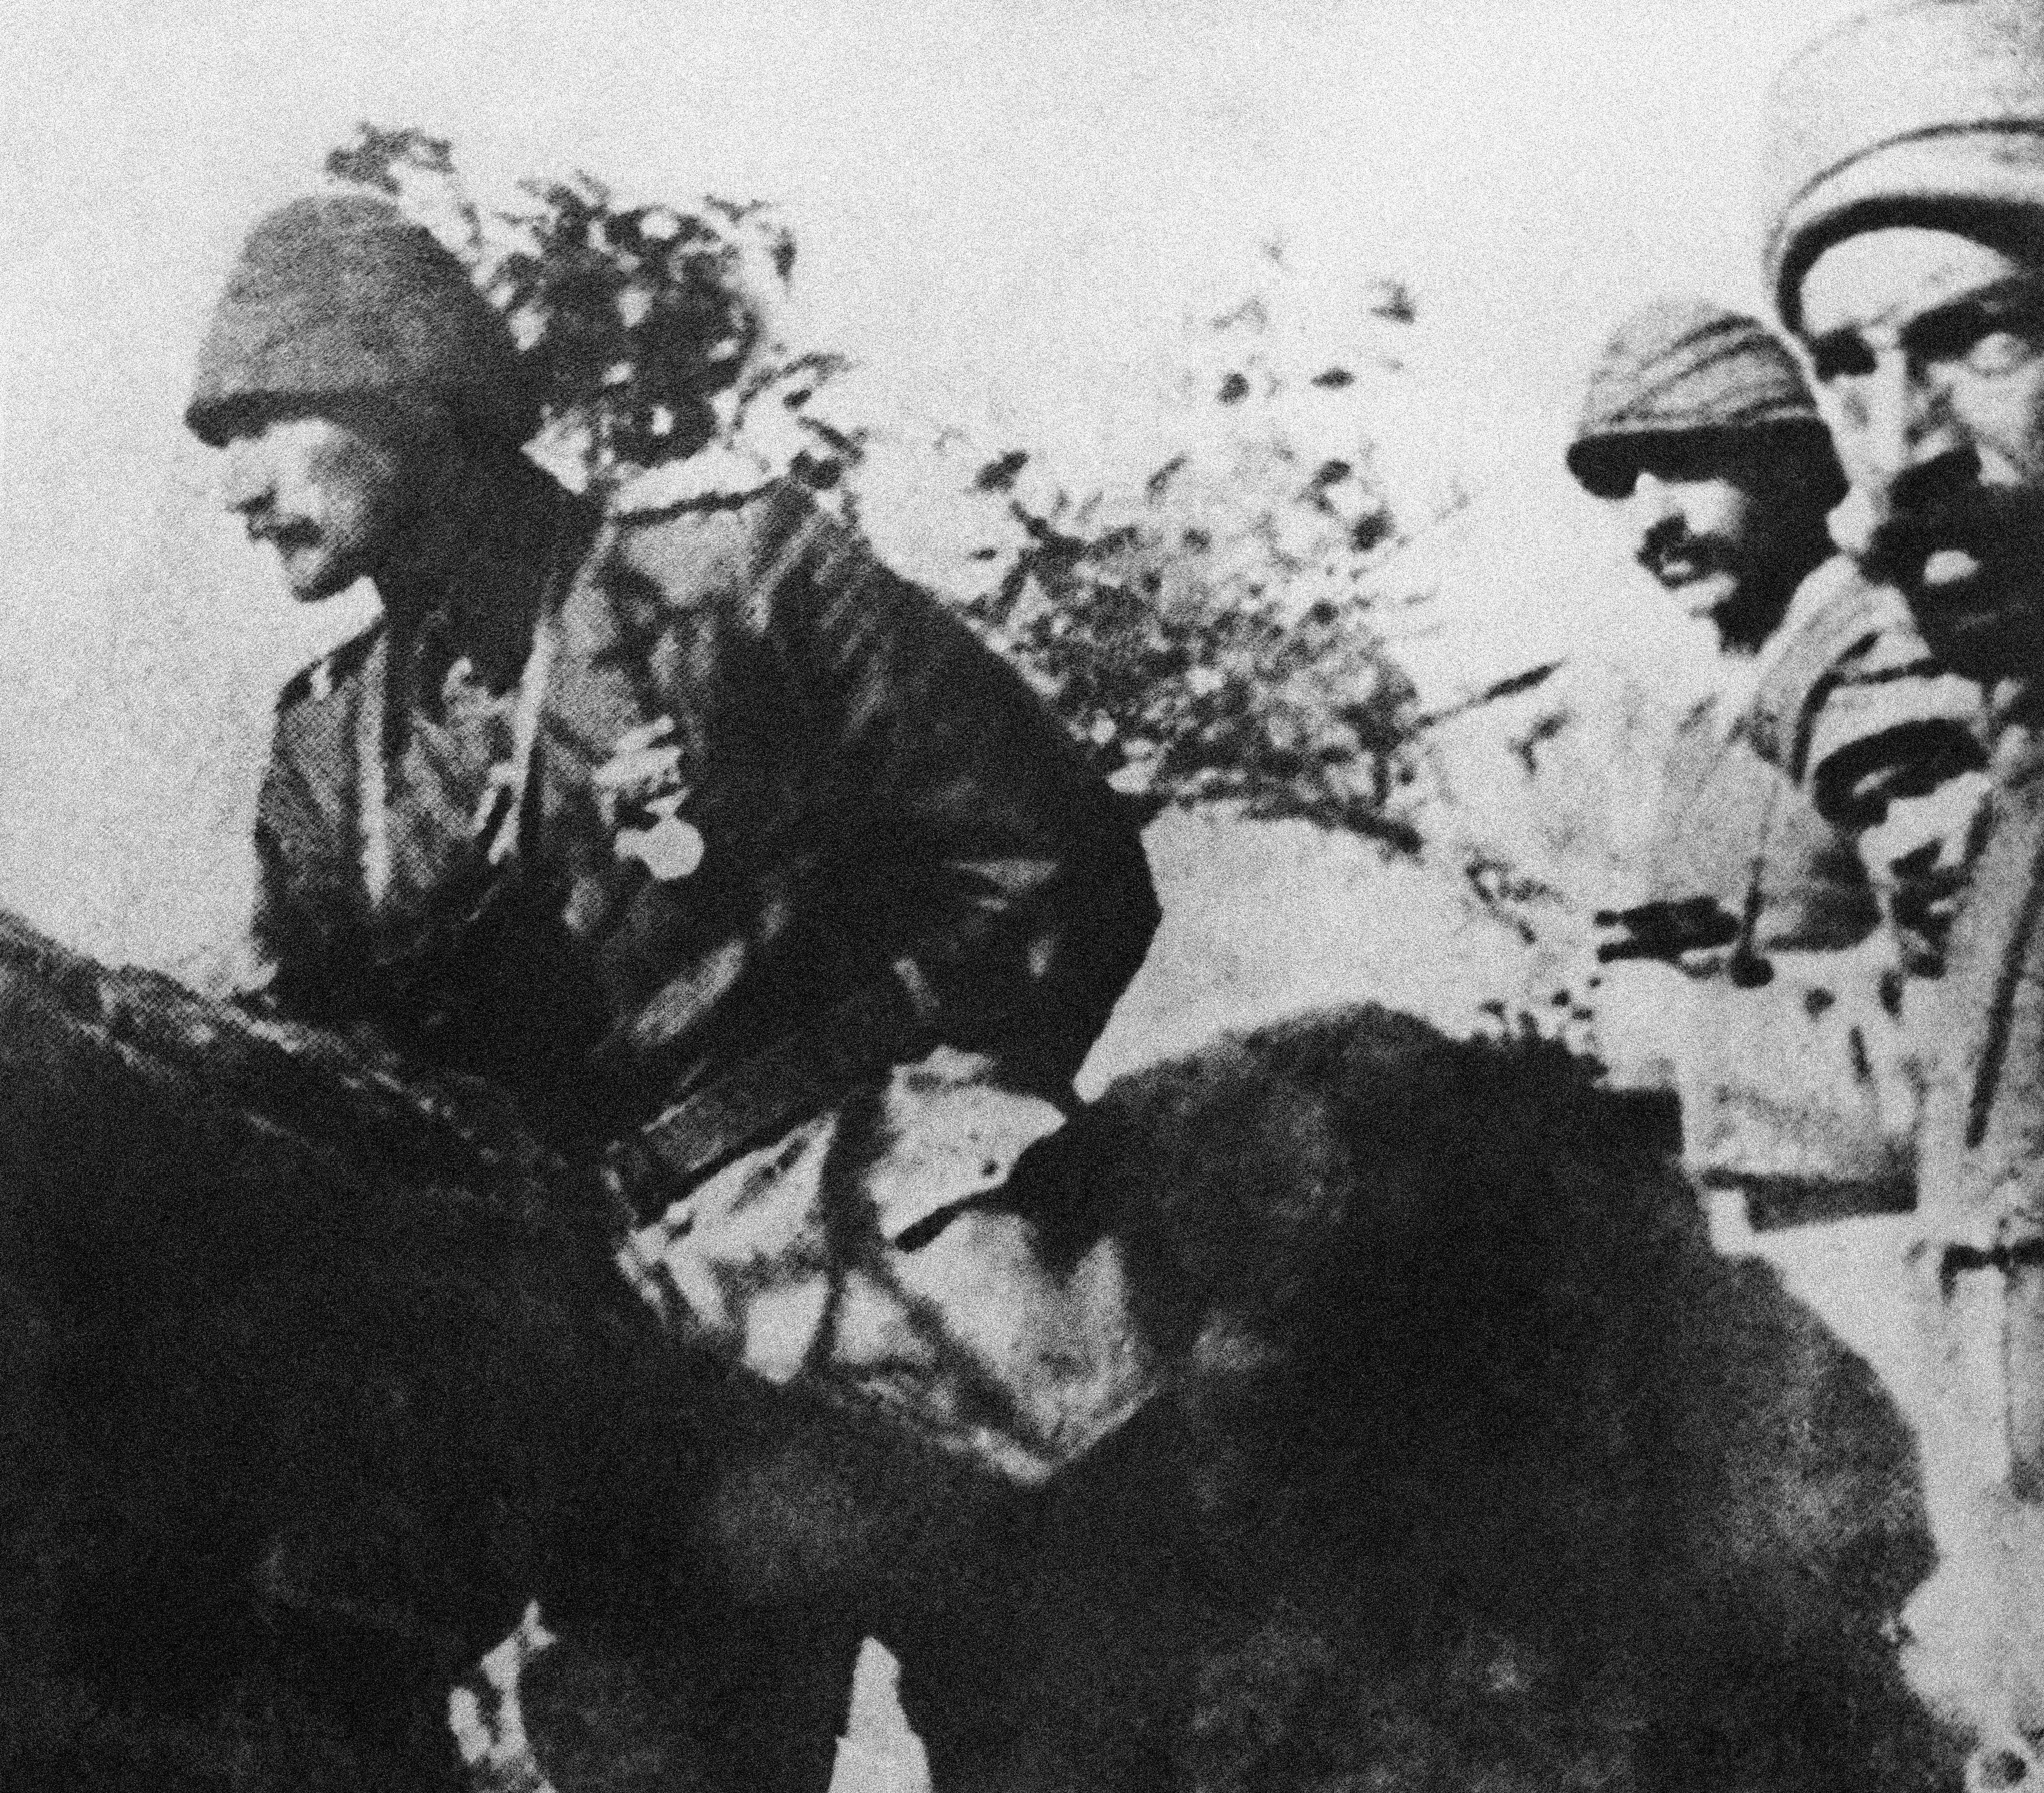 33 OF 100: In this 1915 file photo, Mustafa Kemal Ataturk, military commander of the Turkish troops in Gallipoli, Turkey, looks over the battlefield during World War I.